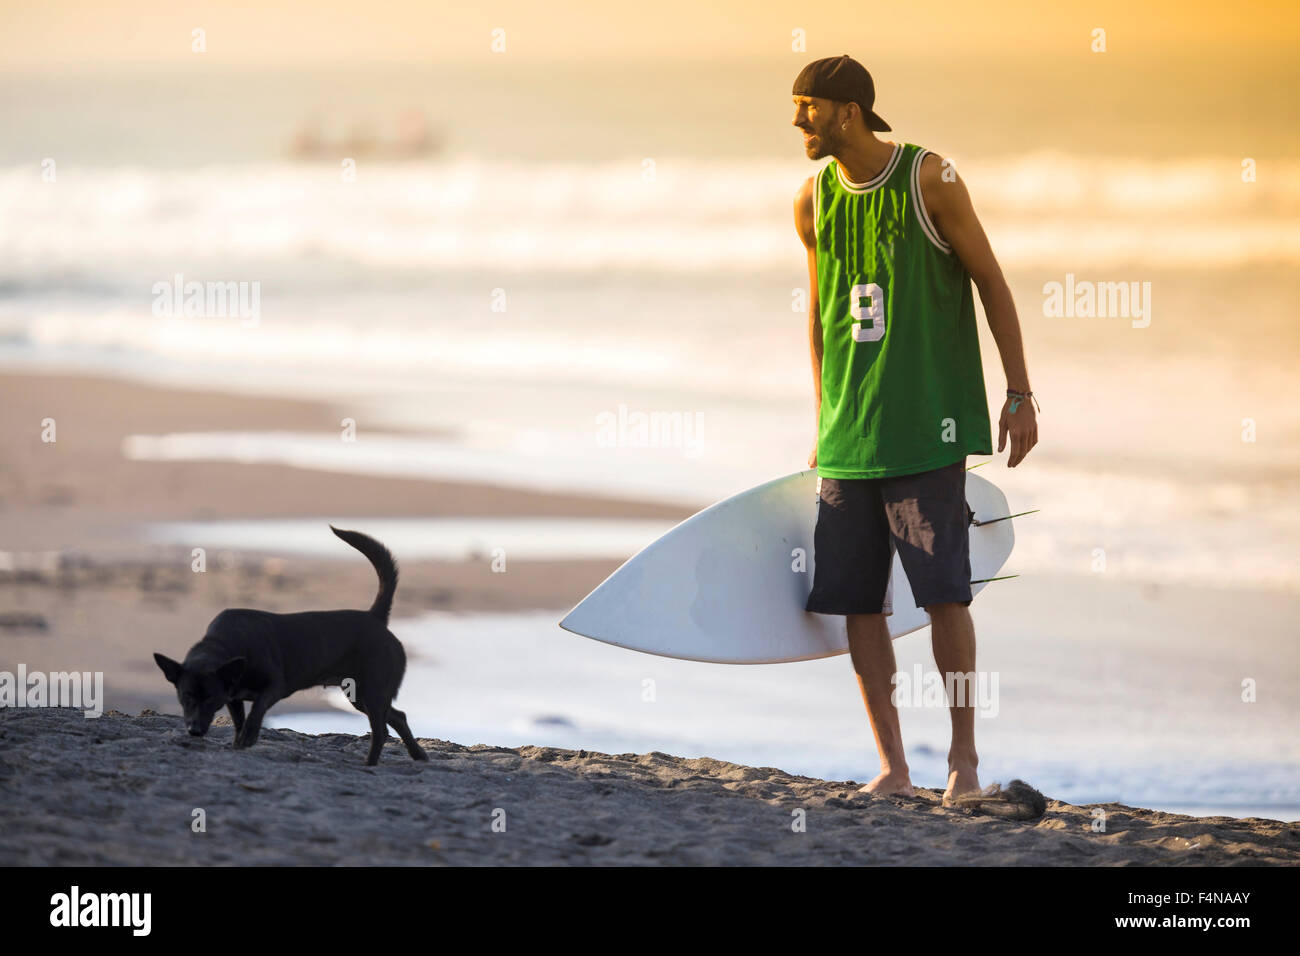 Indonesia, Bali, surfer and dog on the beach - Stock Image